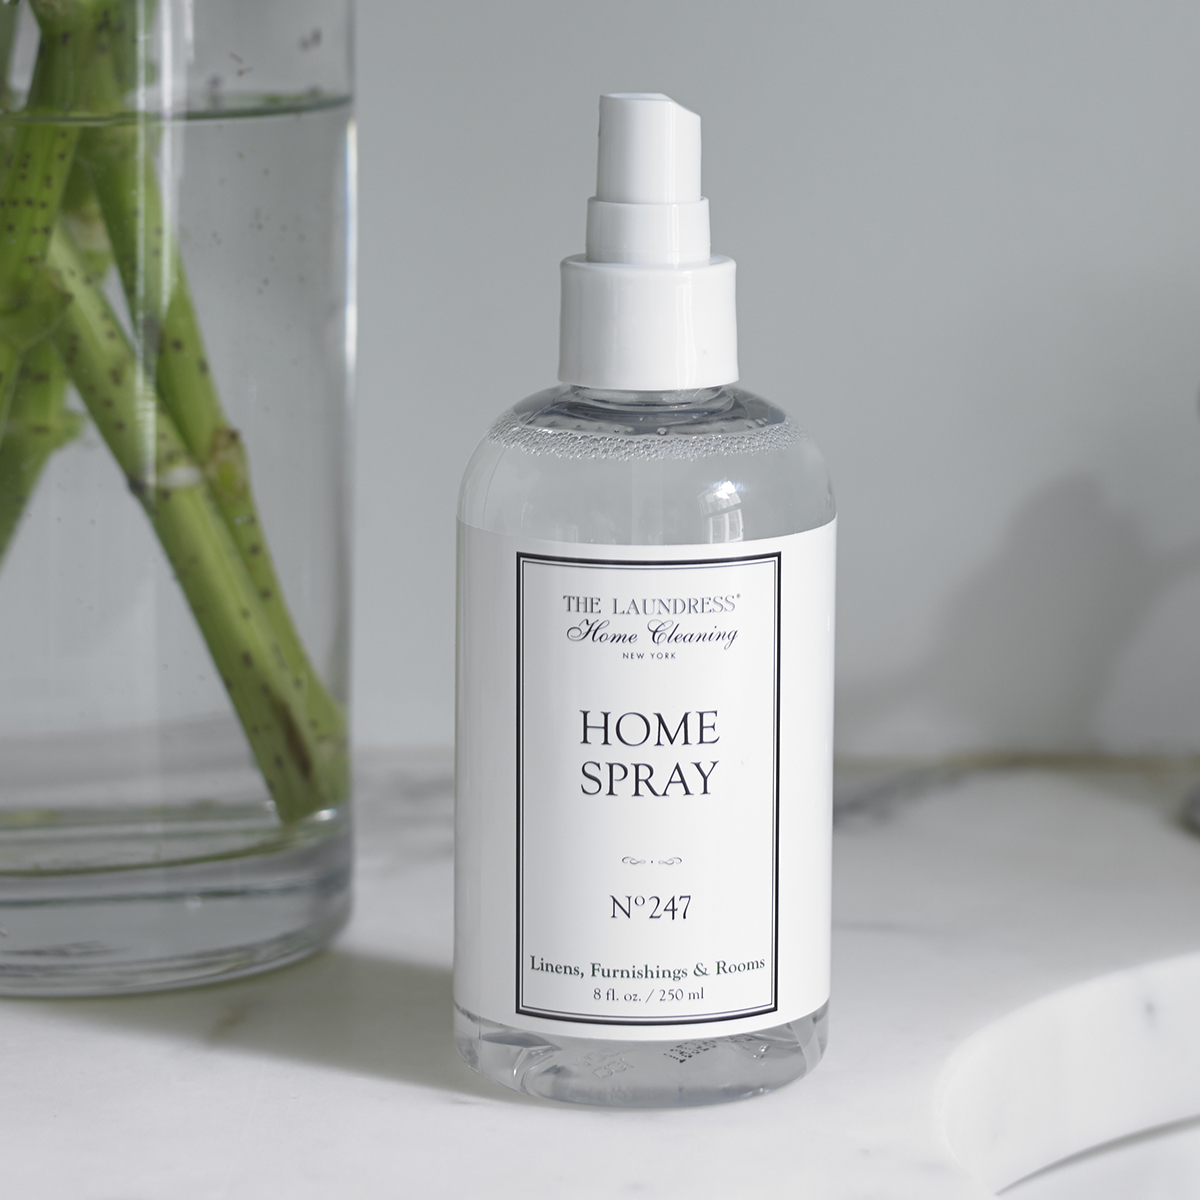 The Laundress 8 oz. Home Spray